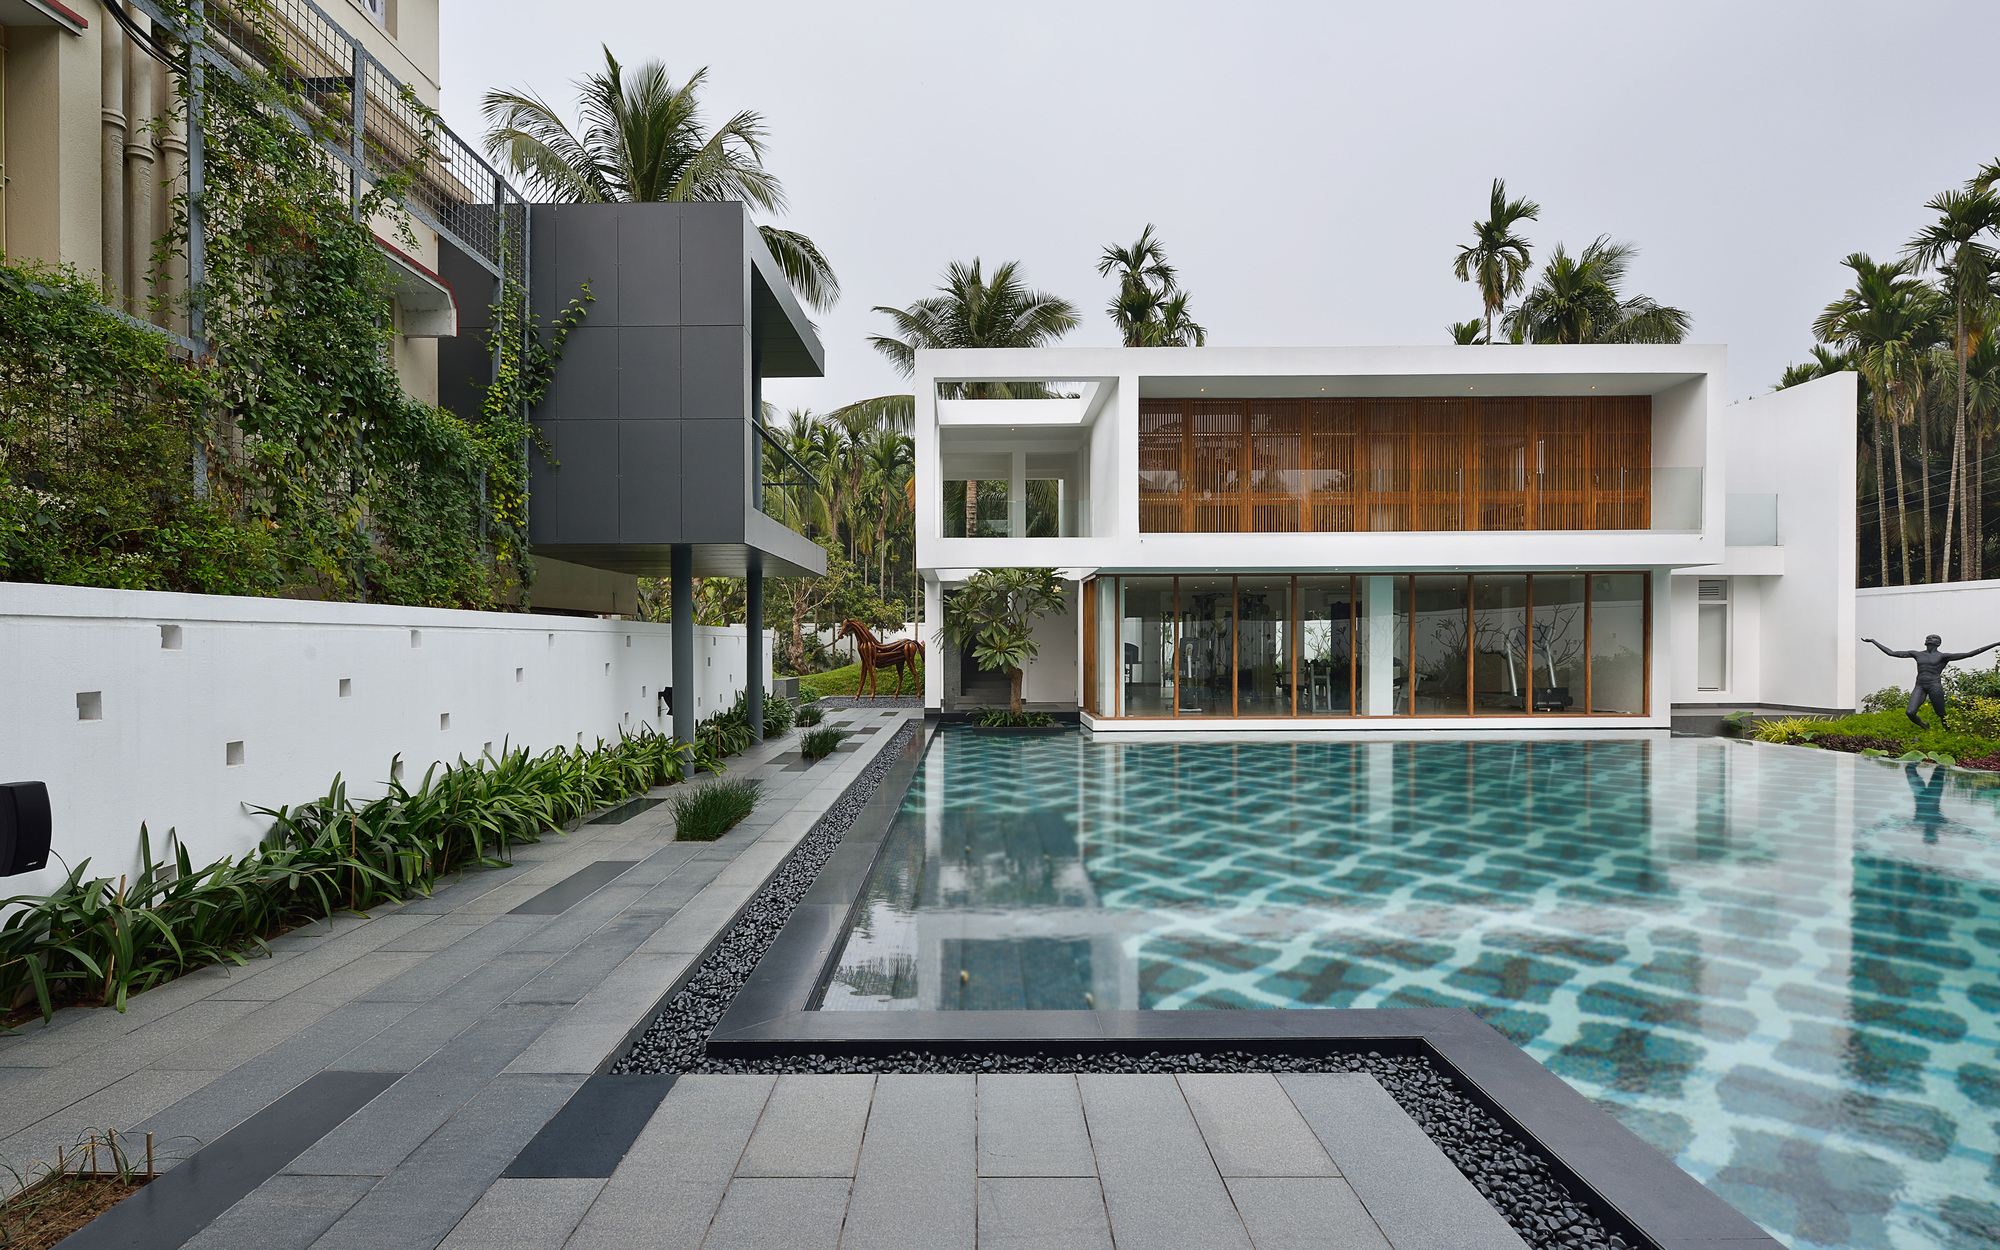 Pool house abin design studio archdaily for Pool design book